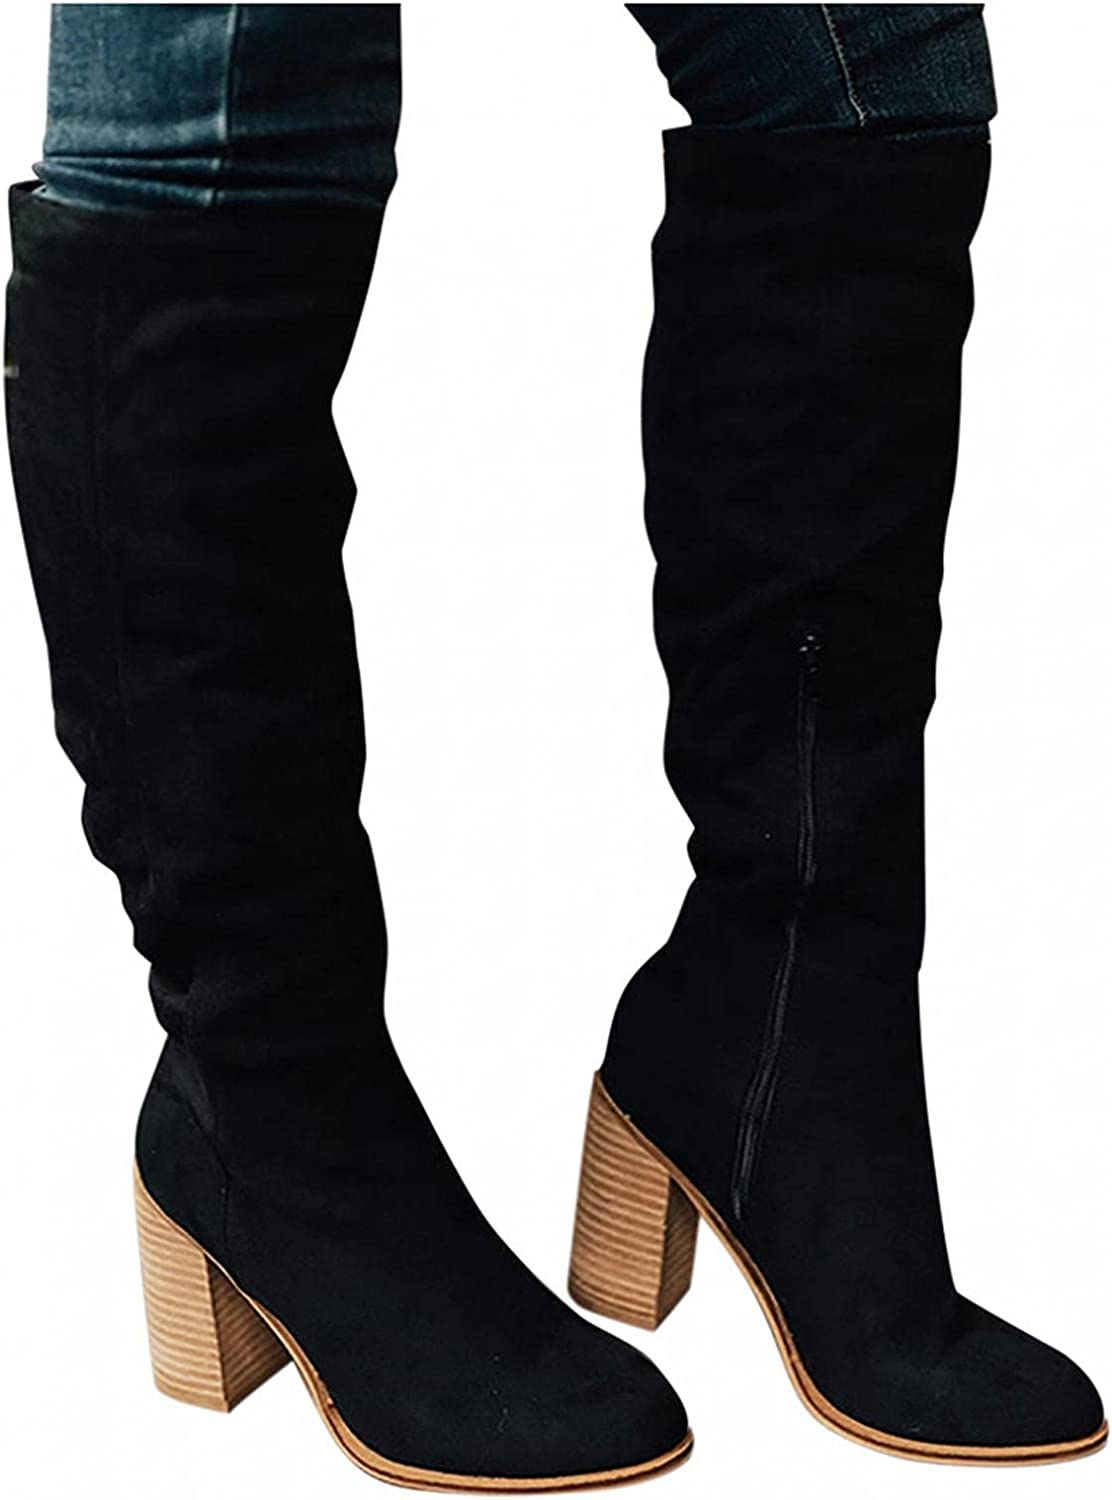 Hbeylia Over The Knee Length Boots Women Ladies Fashion For Max 48% OFF Popular popular Chun